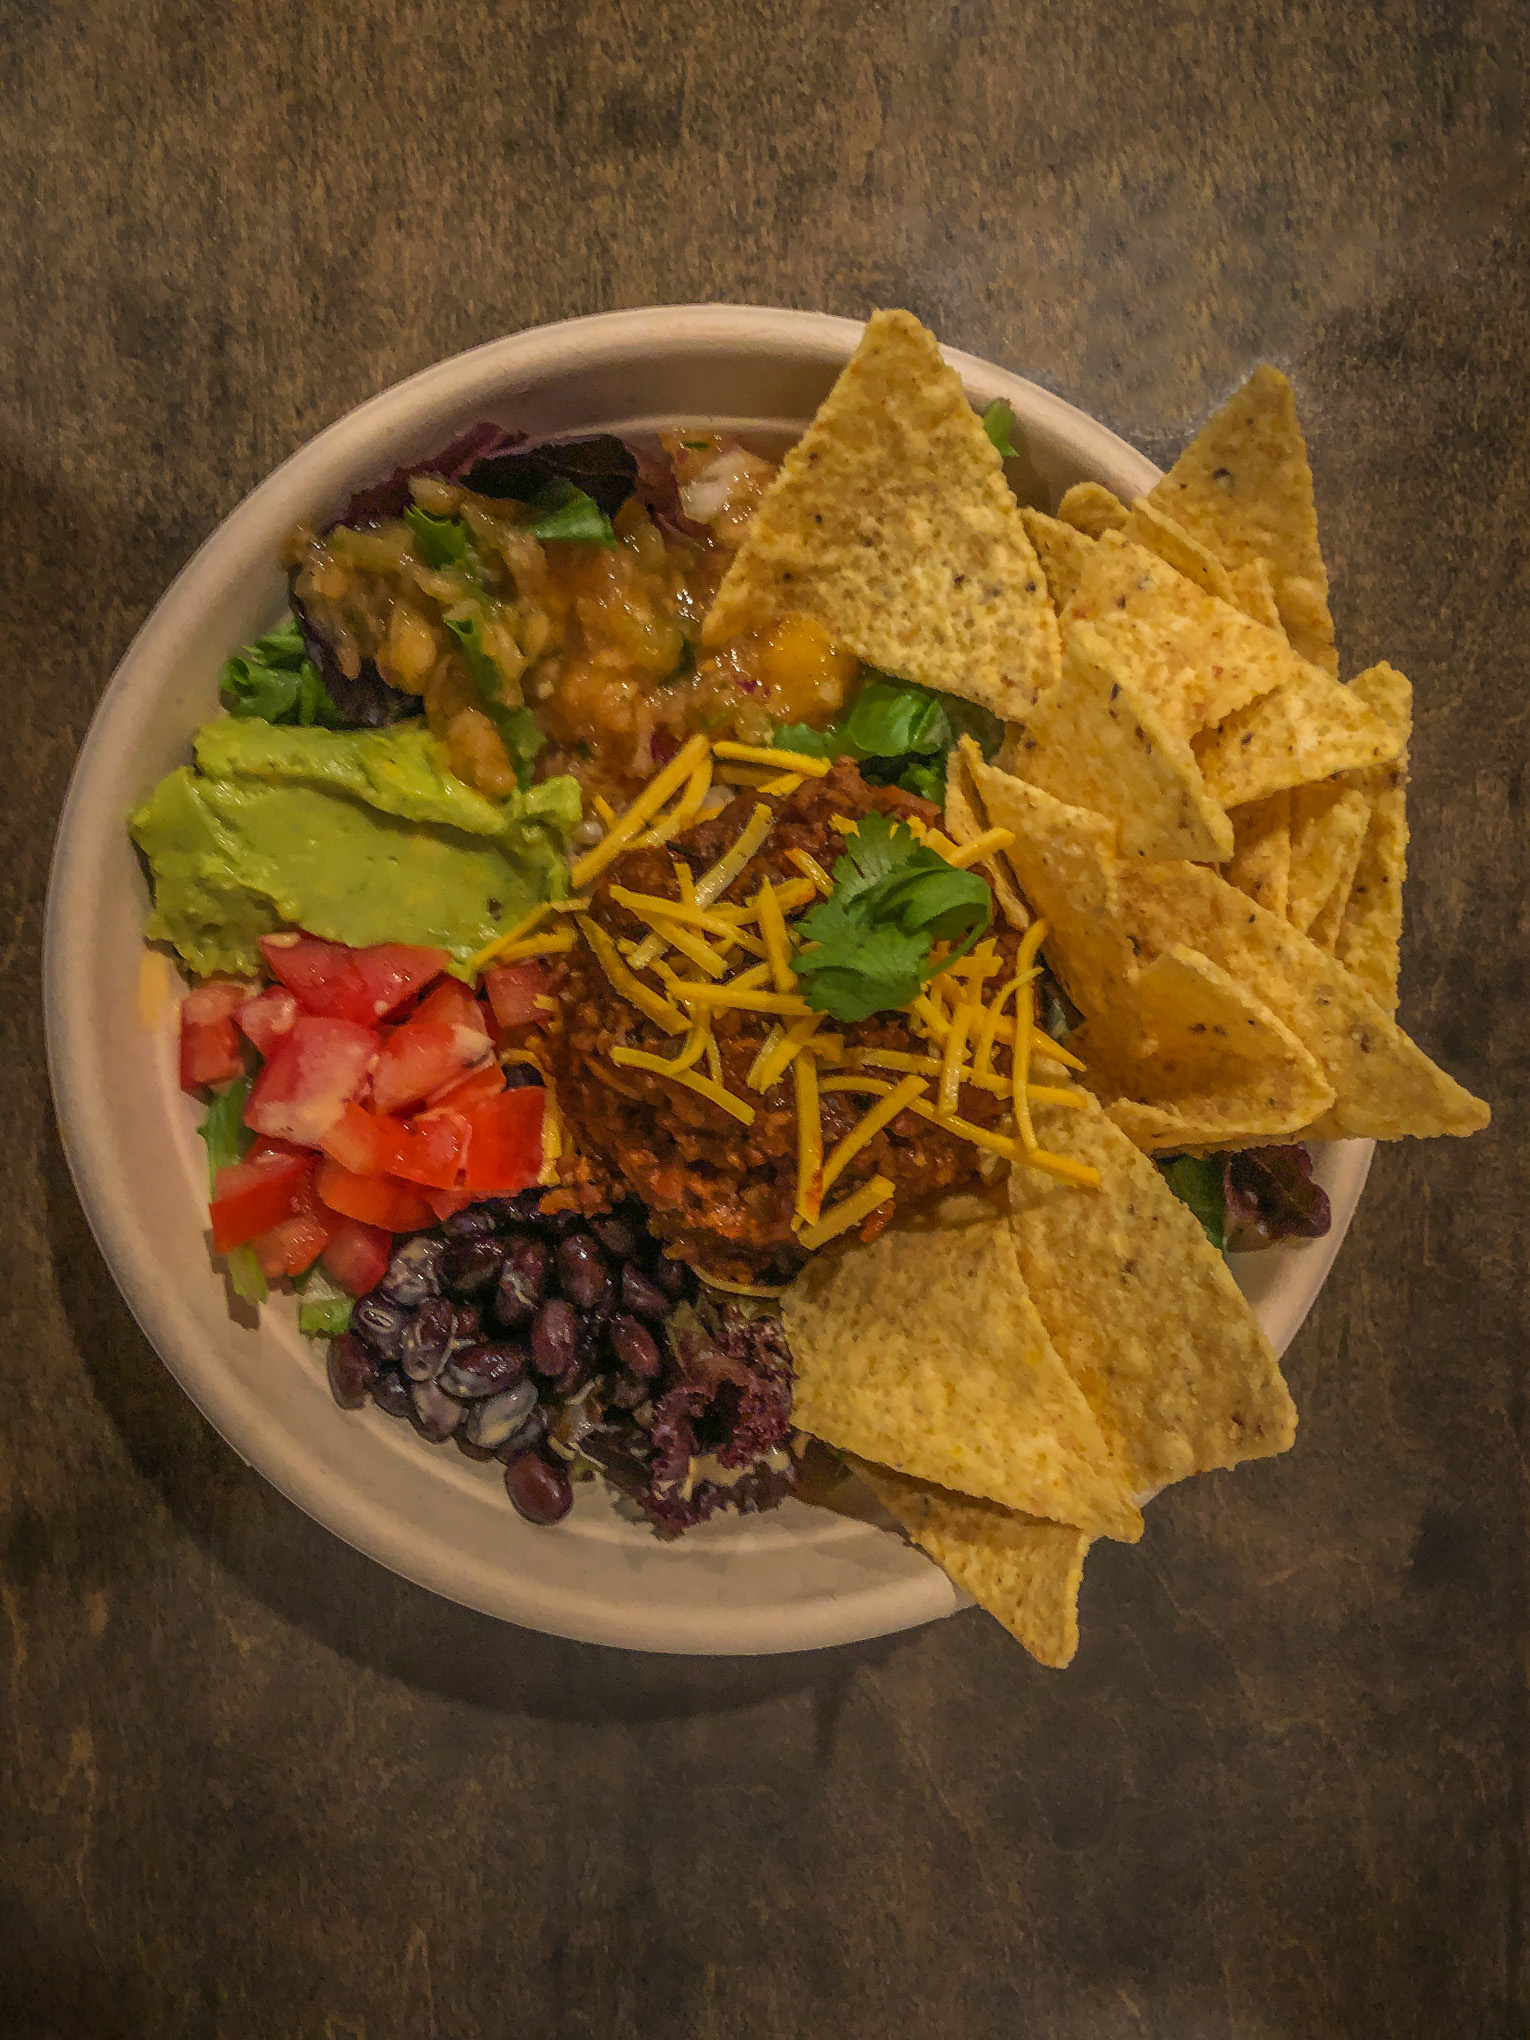 Bowl of taco salad with tortilla chips